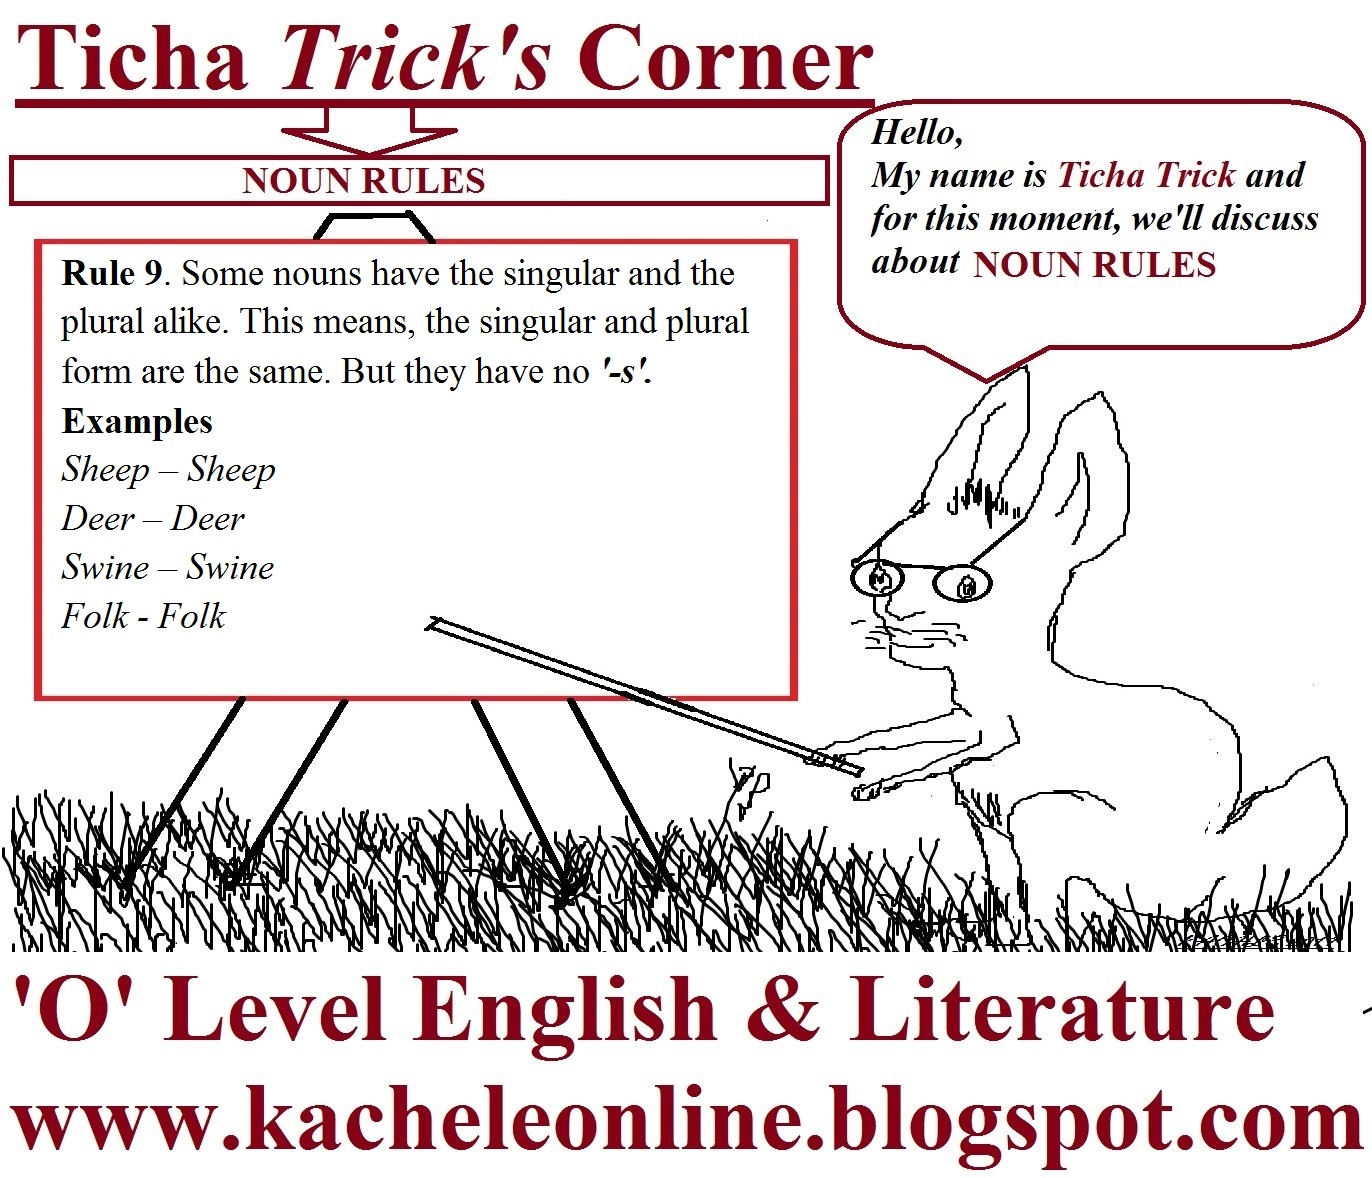 O' Level English Blog: Join 'TICHA TRICK' to discuss the NOUN RULE ...